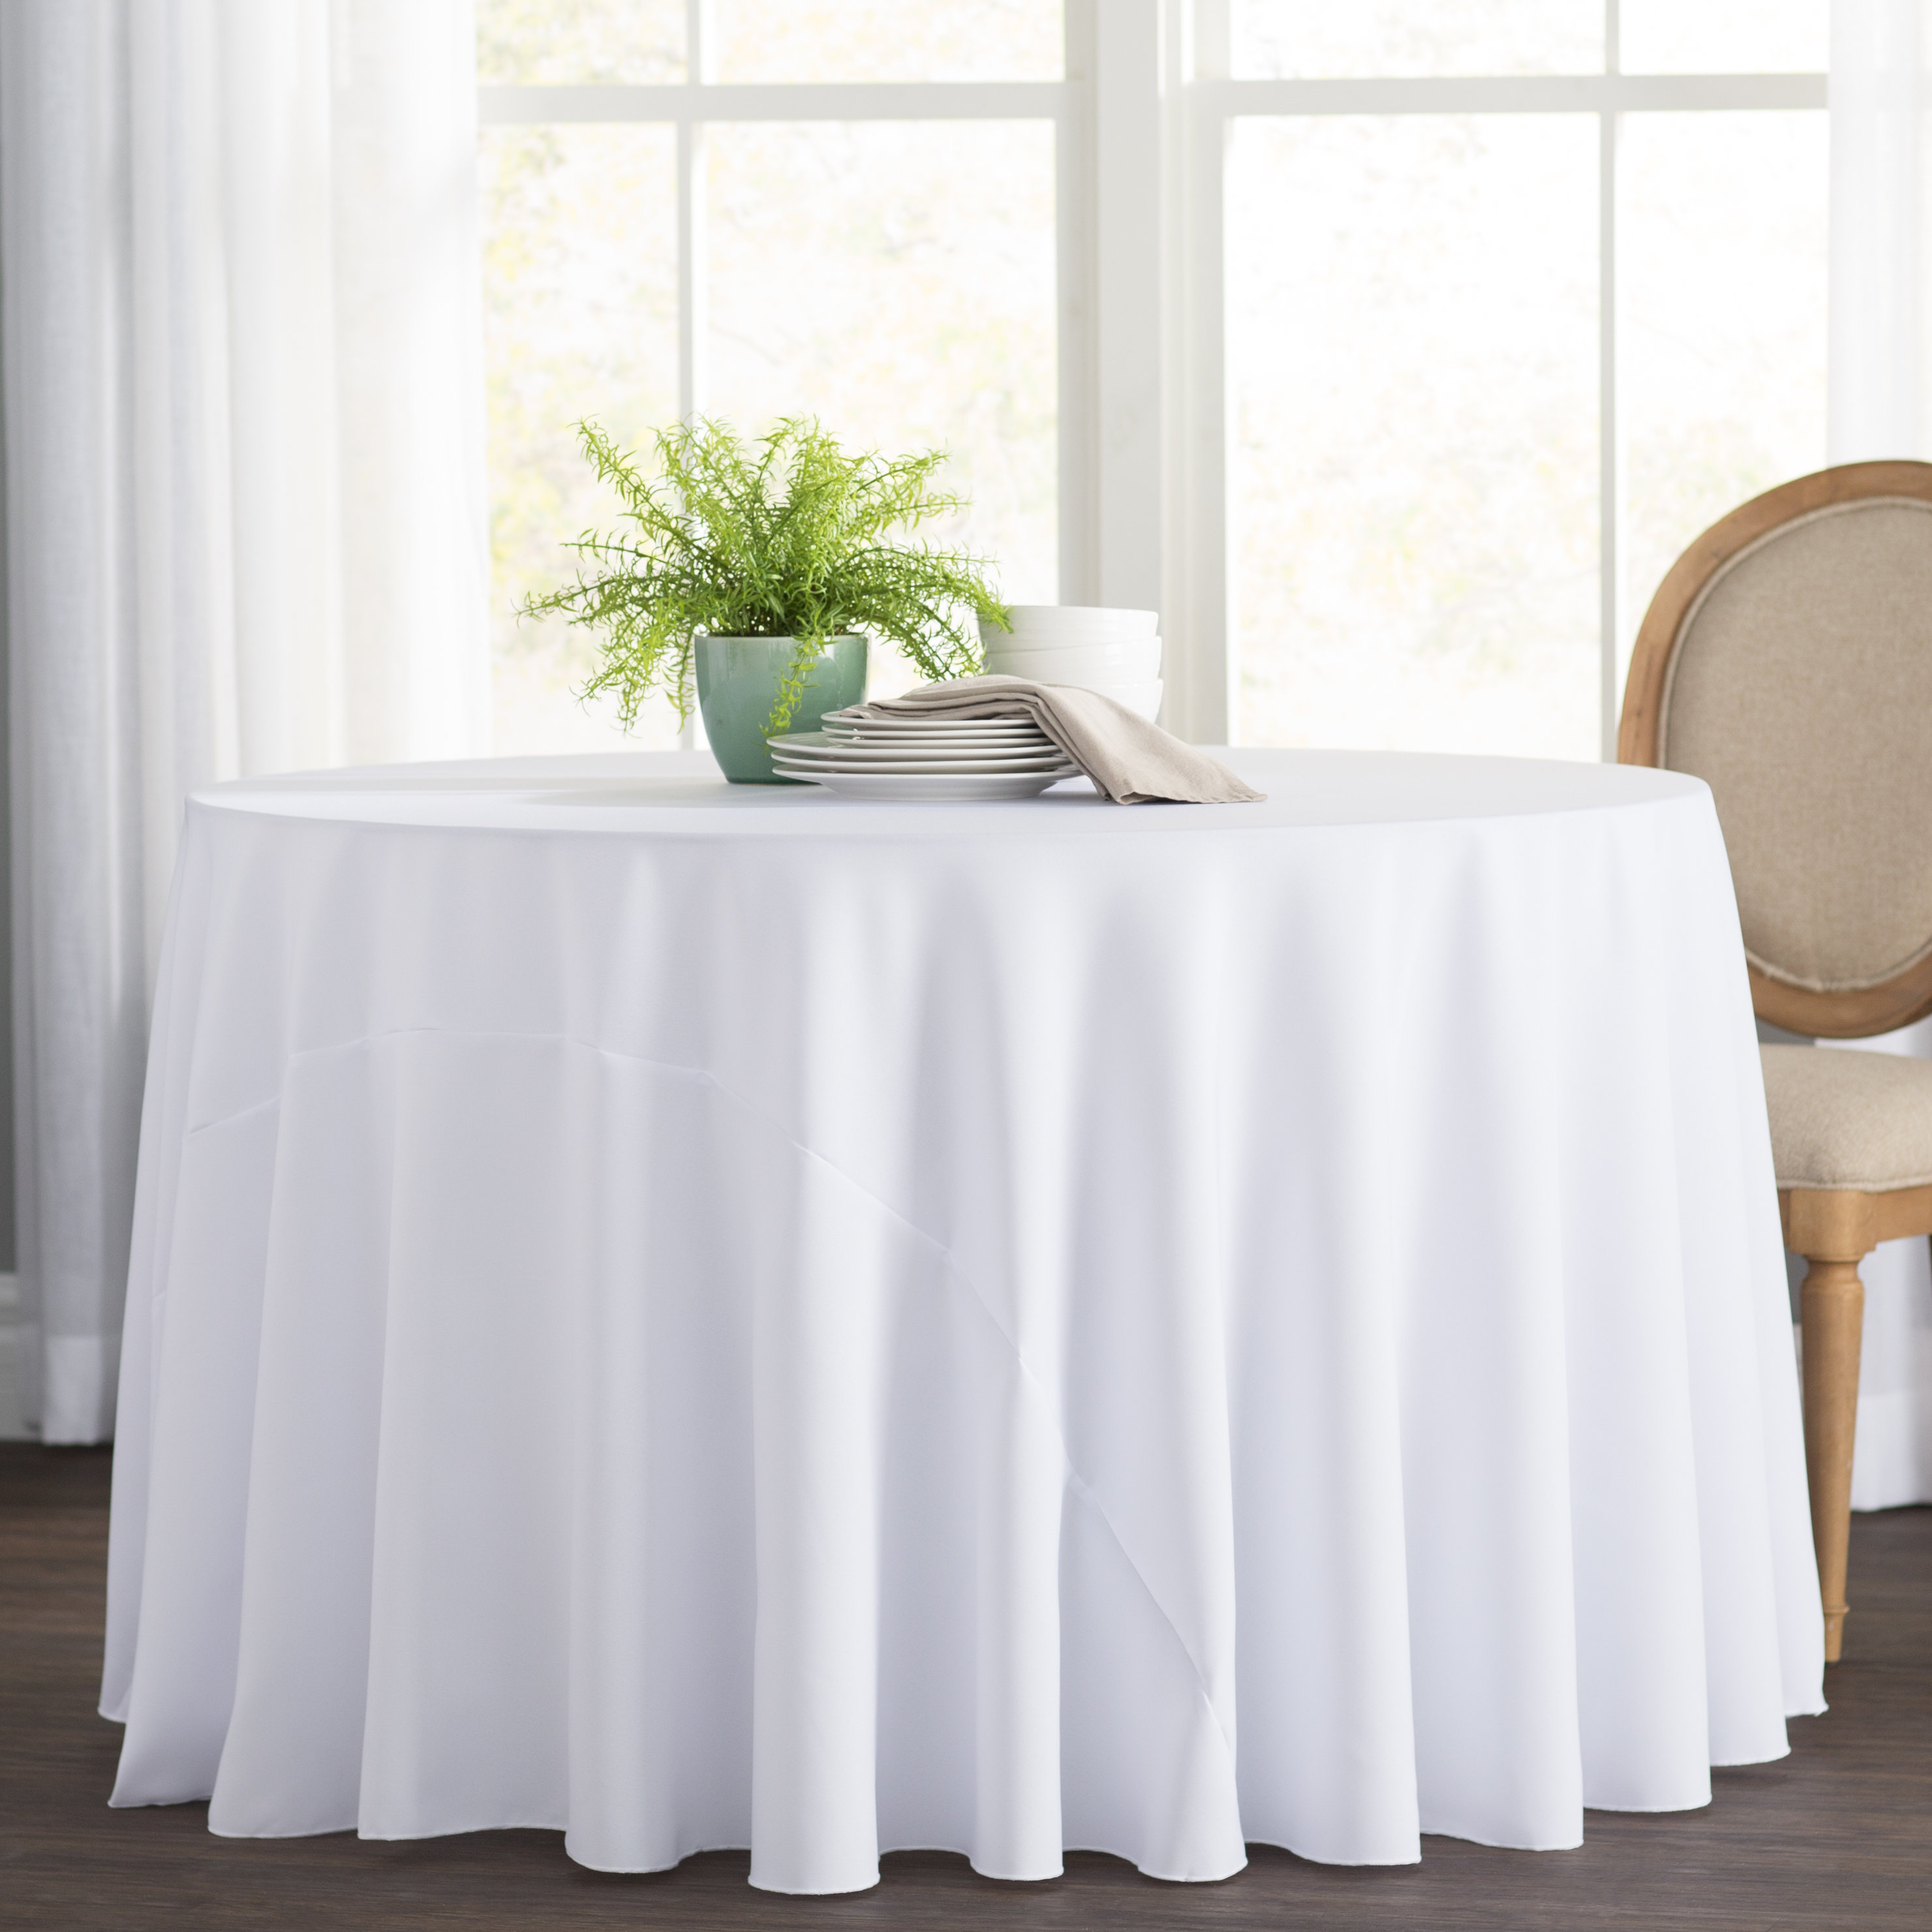 basics polyester round tablecloth reviews accent pier one imports table and chairs bedroom side drawers runner rugs hutch market patio umbrella small outdoor teak mosaic tile